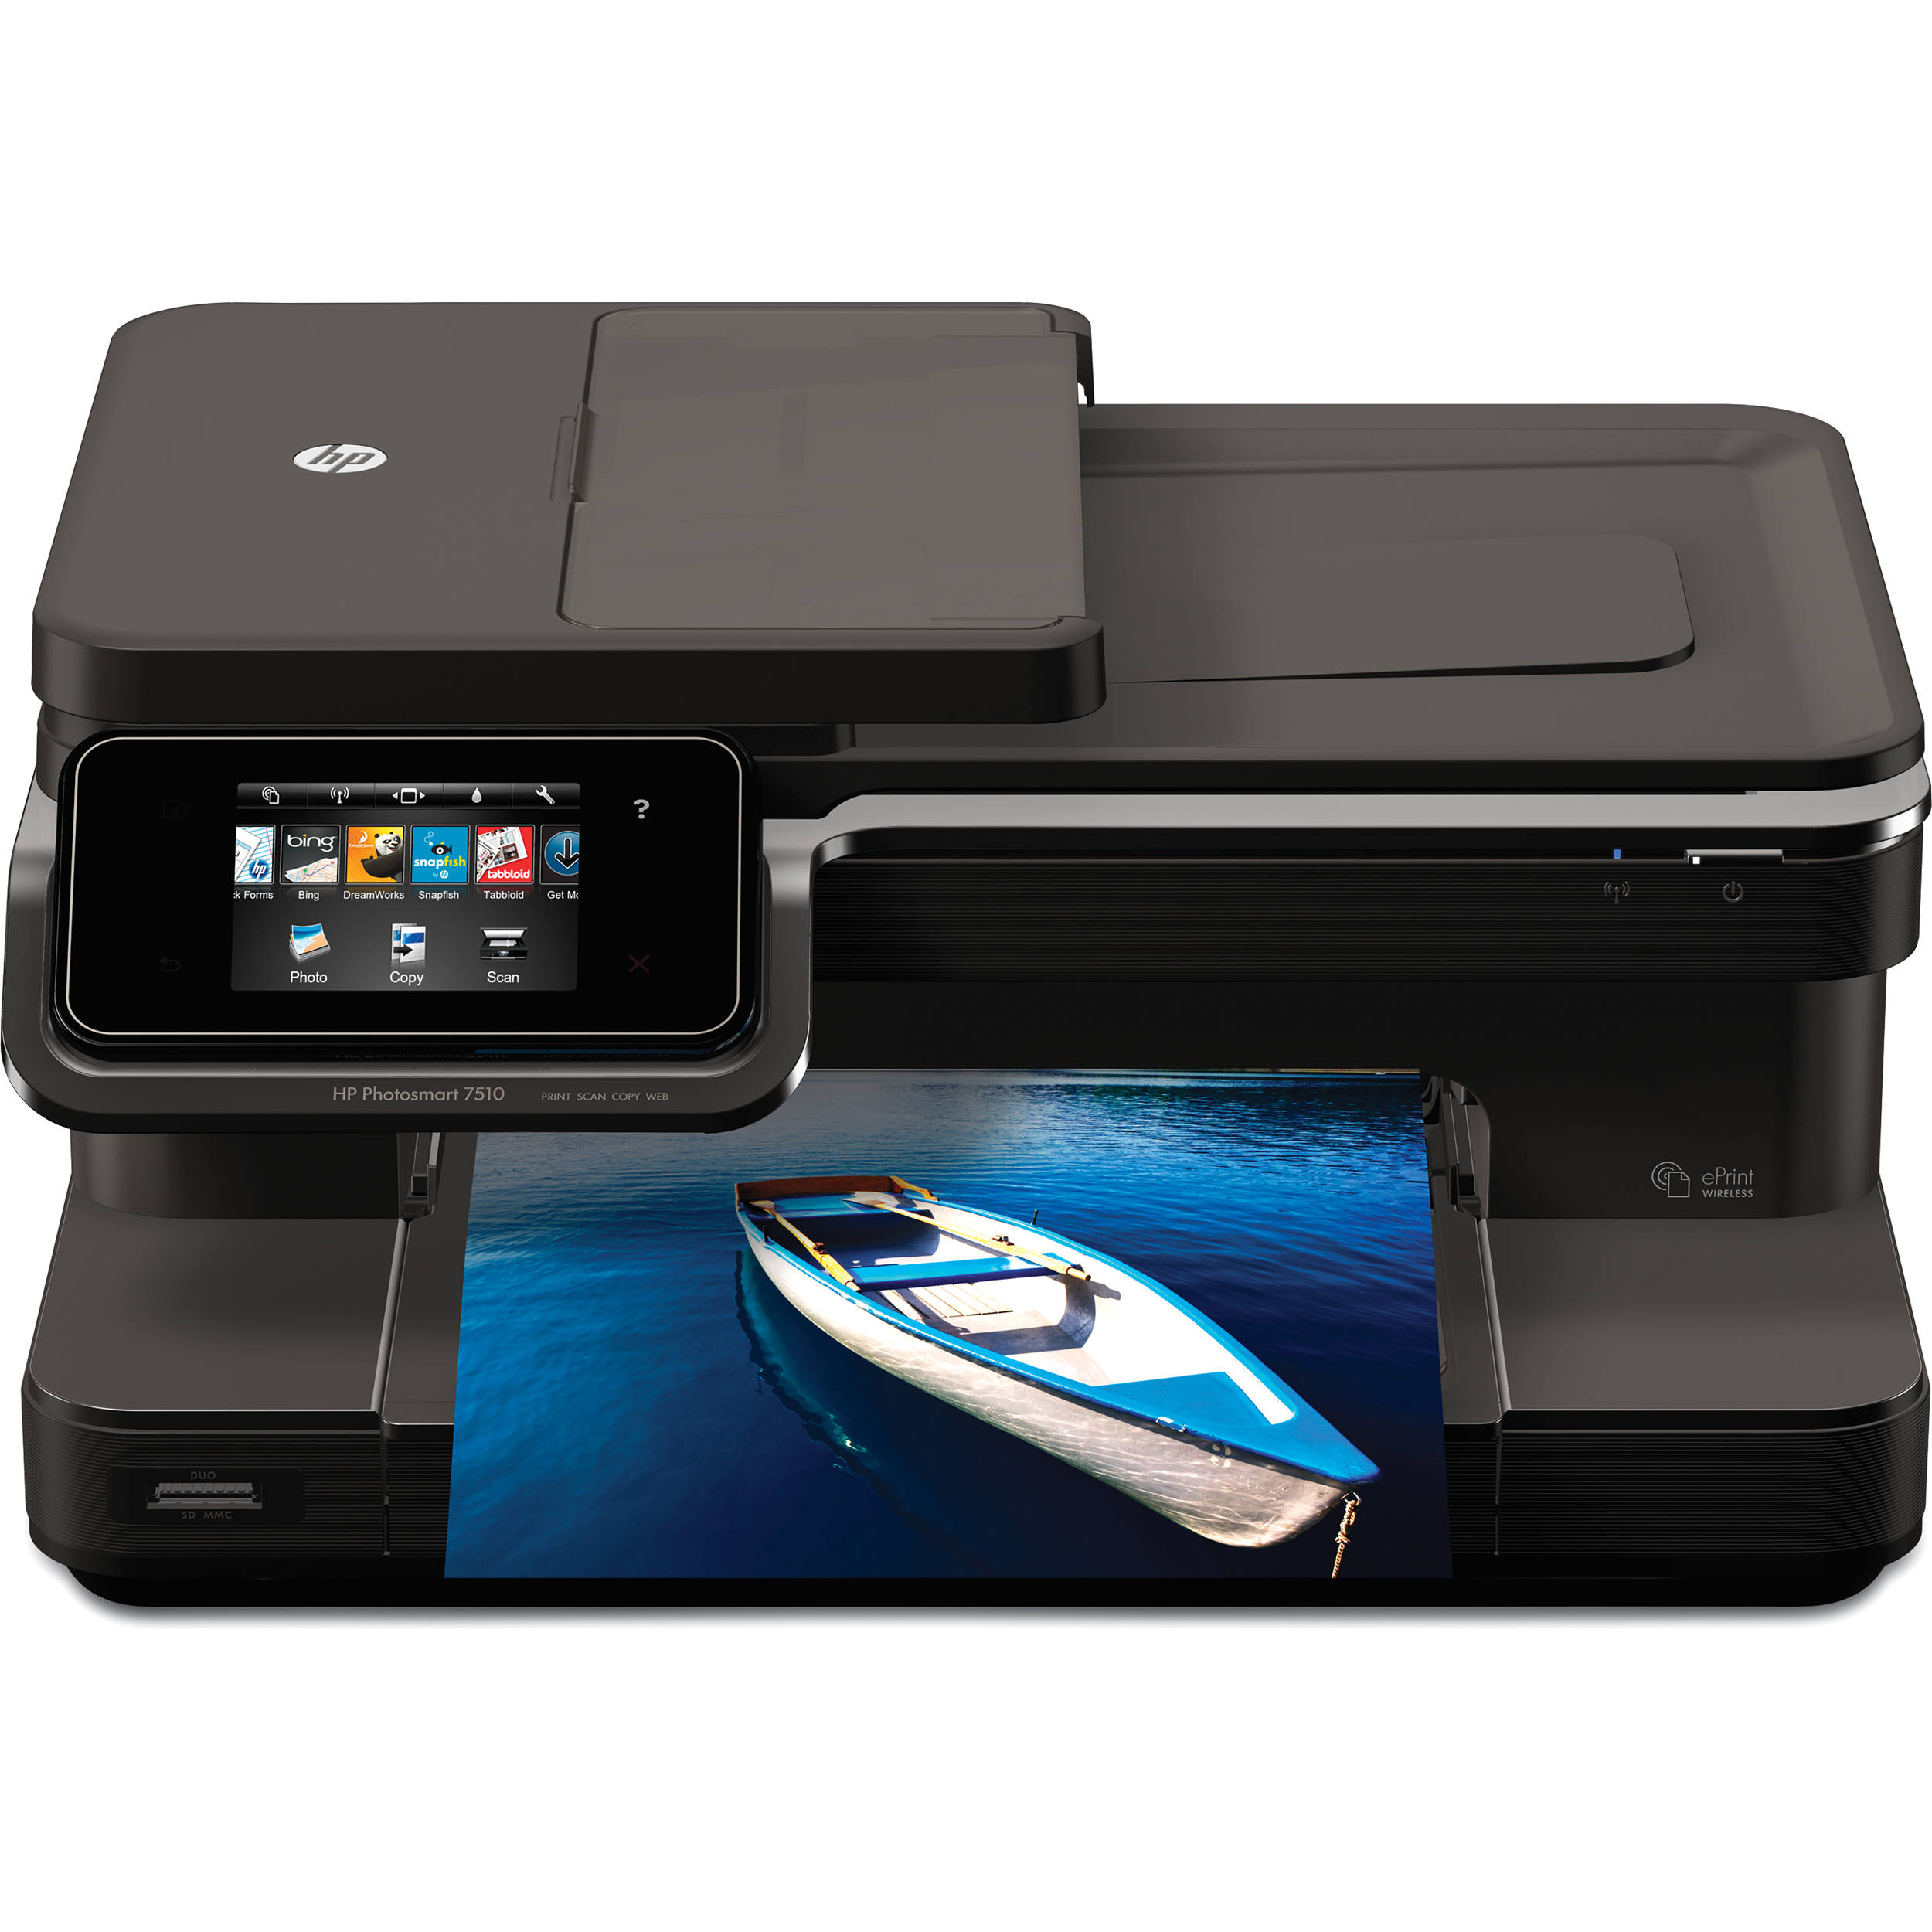 HP Photosmart 7510 E All In One Color Inkjet Printer